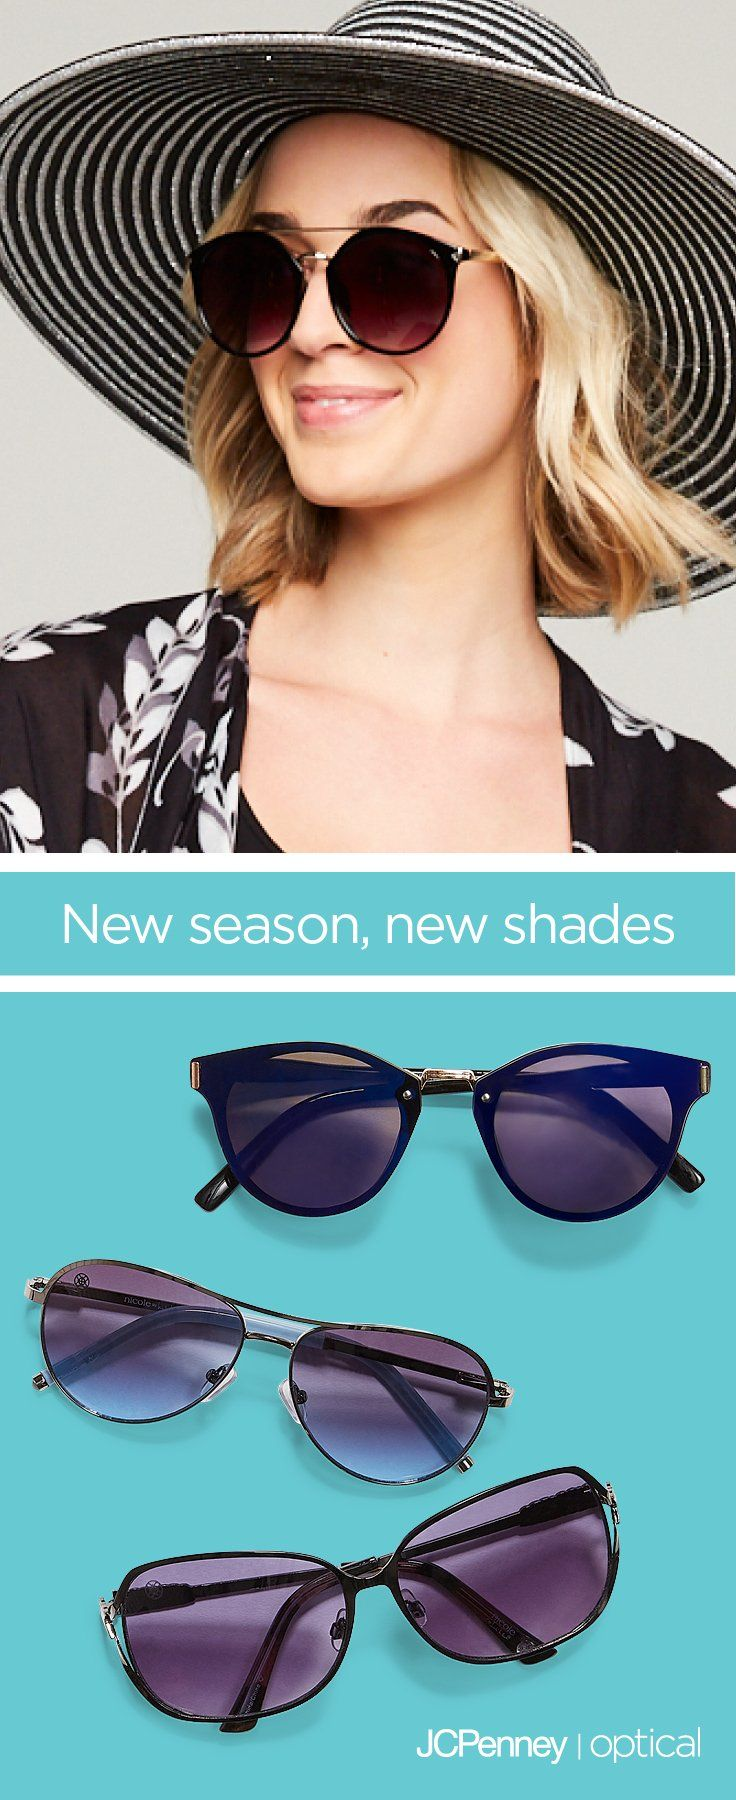 51907759eec6 Summer is here, get new sunglasses! Check out the latest Ray-Ban sunglasses,  nicole by Nicole Miller Studio sunglasses and more. No matter your face  shape, ...